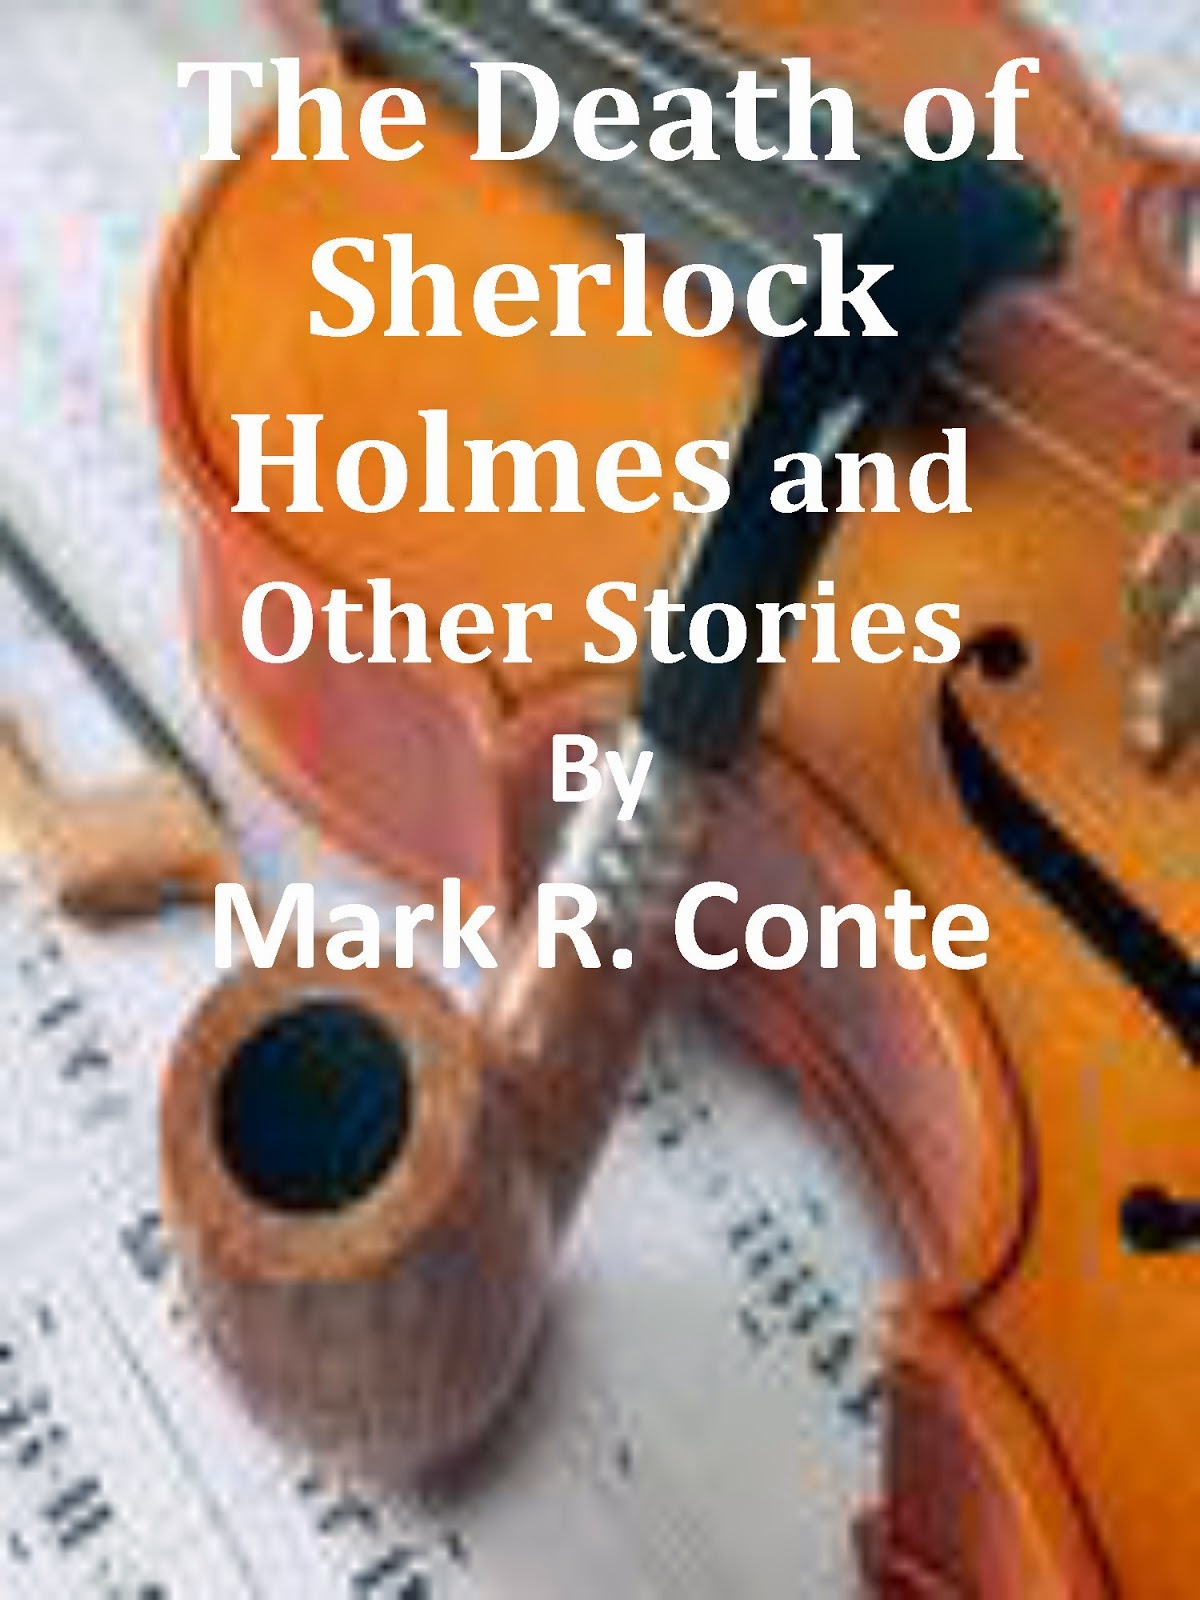 http://www.barnesandnoble.com/w/the-death-of-sherlock-holmes-other-stories-mark-conte/1119876379